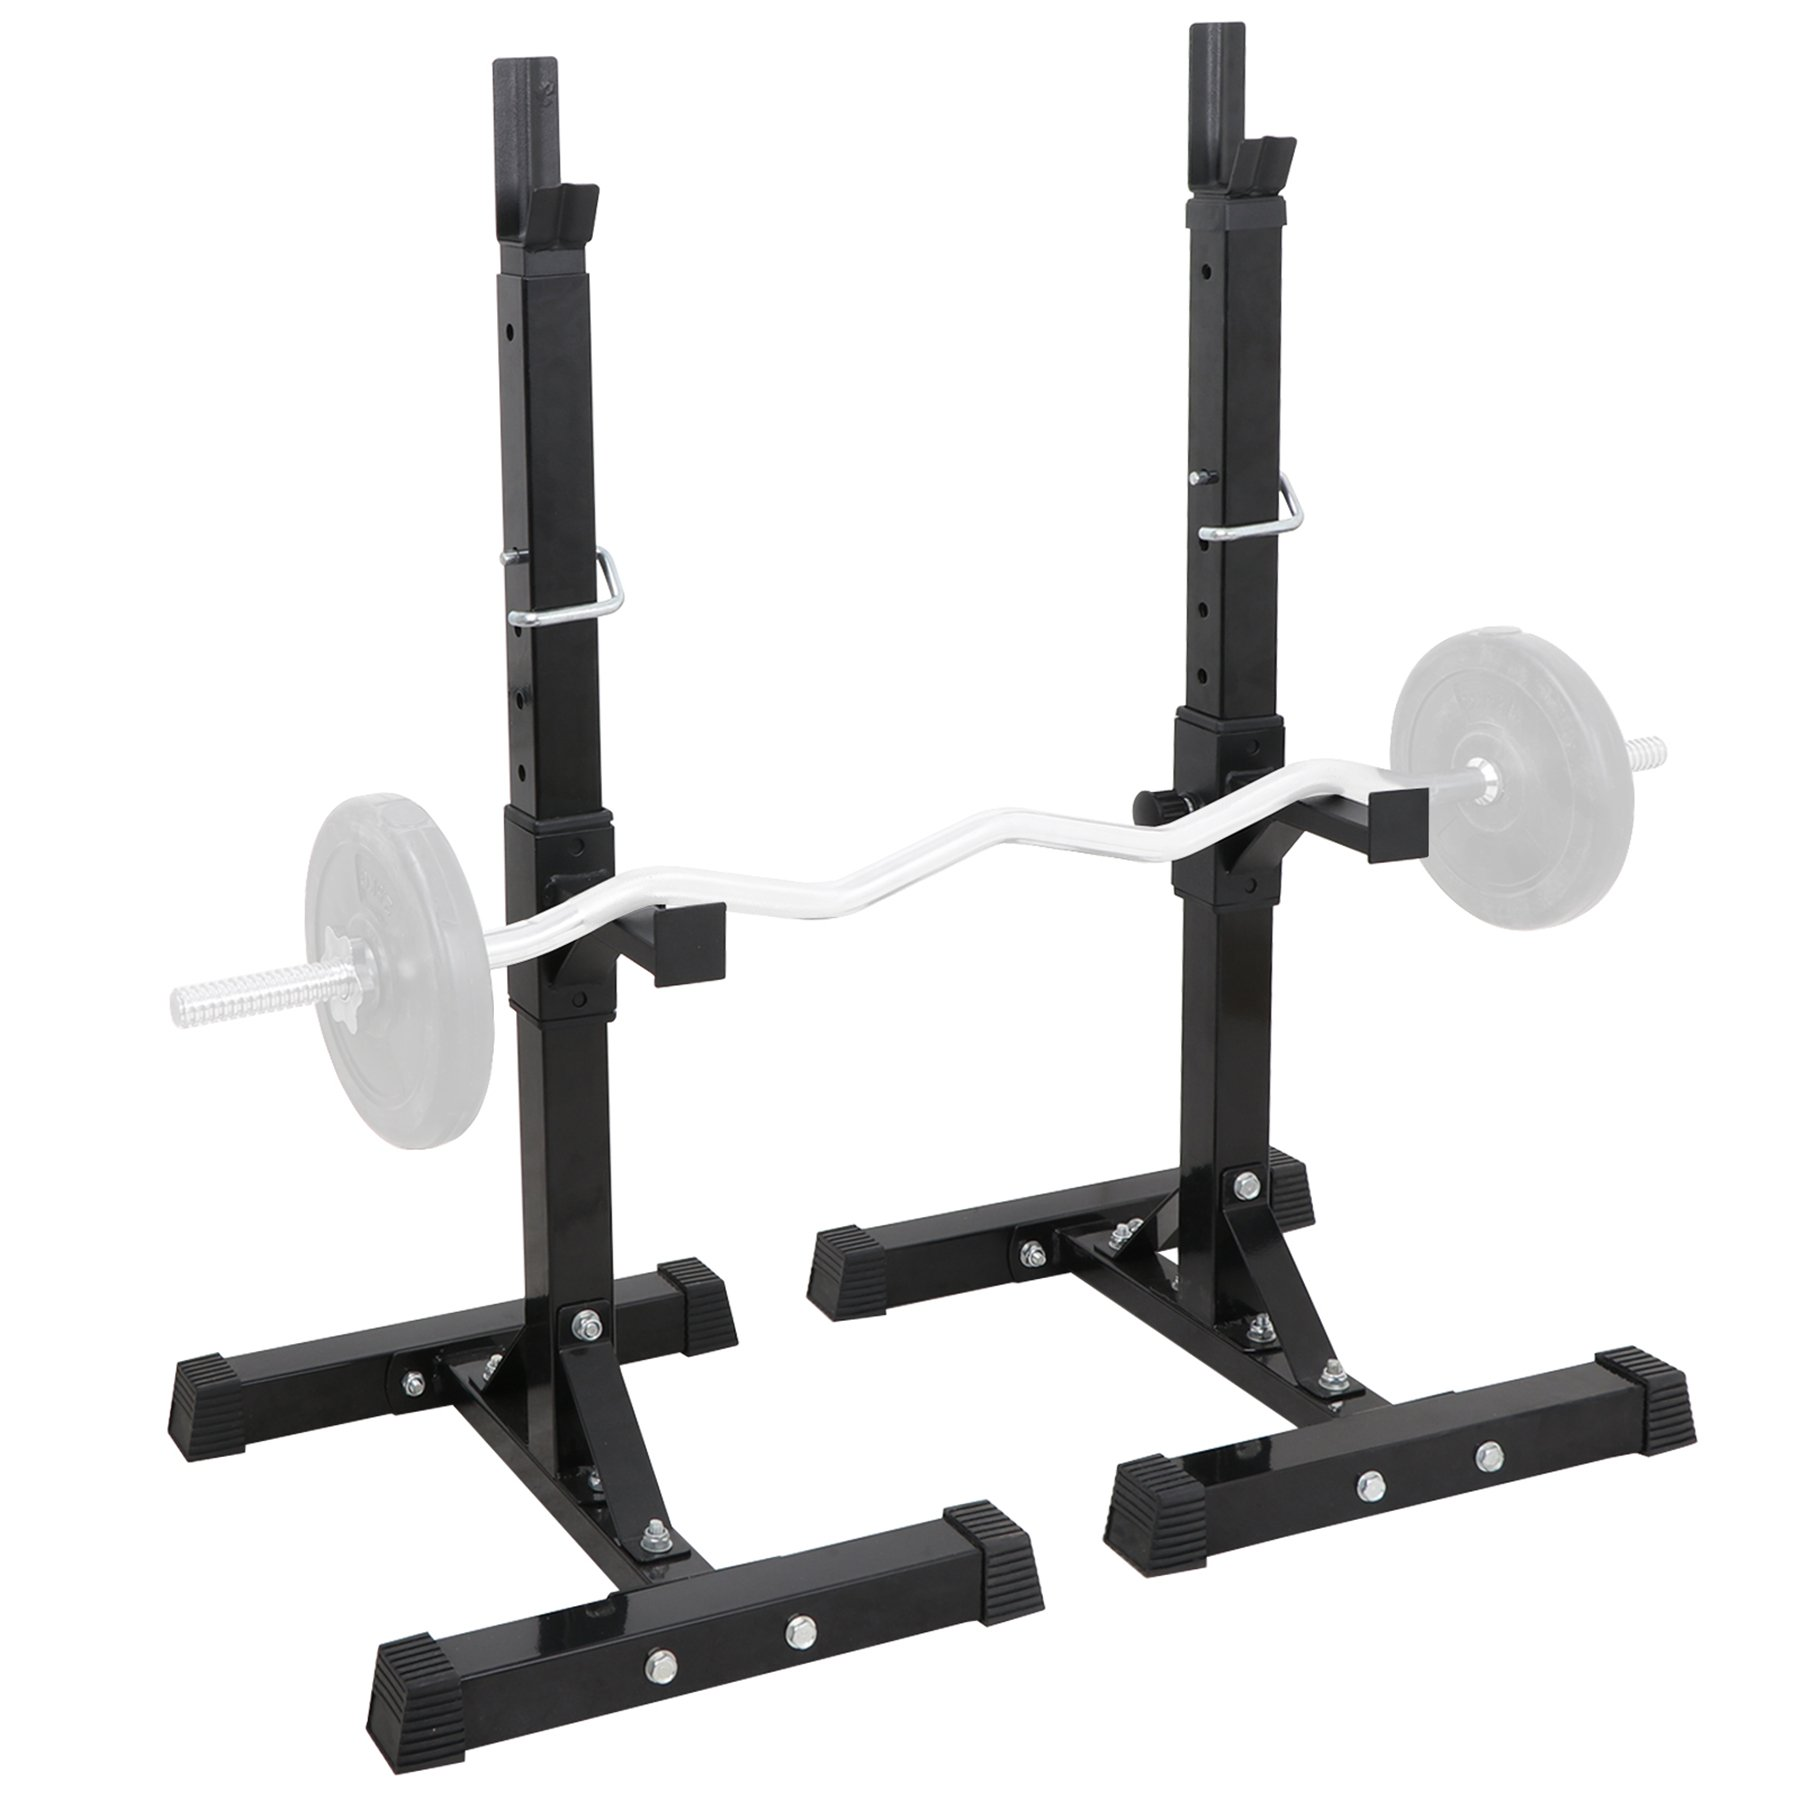 F2C Max Load 550Lbs Pair of Adjustable 41''-66'' Rack Sturdy Steel Squat Barbell Bench Press Stands GYM/Home Gym Portable Dumbbell Racks Stands by F2C